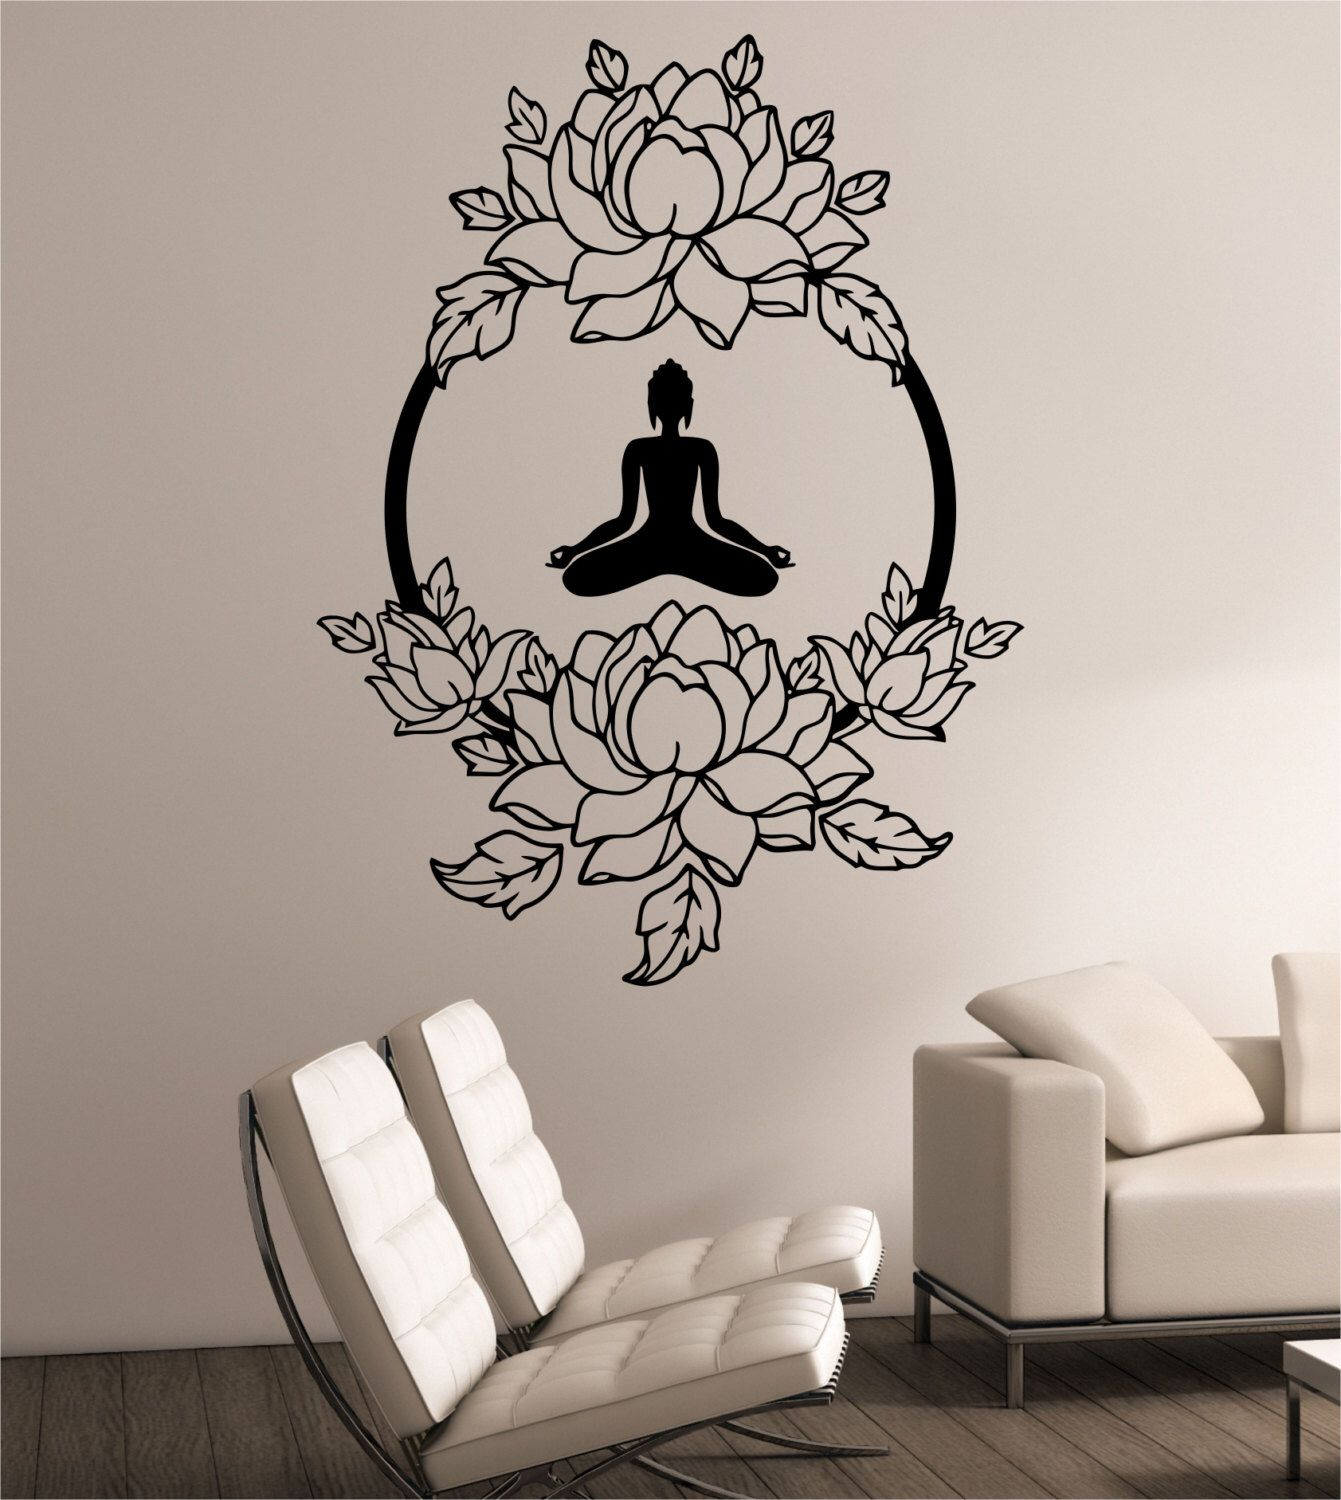 lotus wall decal meditation sticker art decor bedroom design mural interior design buddha. Black Bedroom Furniture Sets. Home Design Ideas